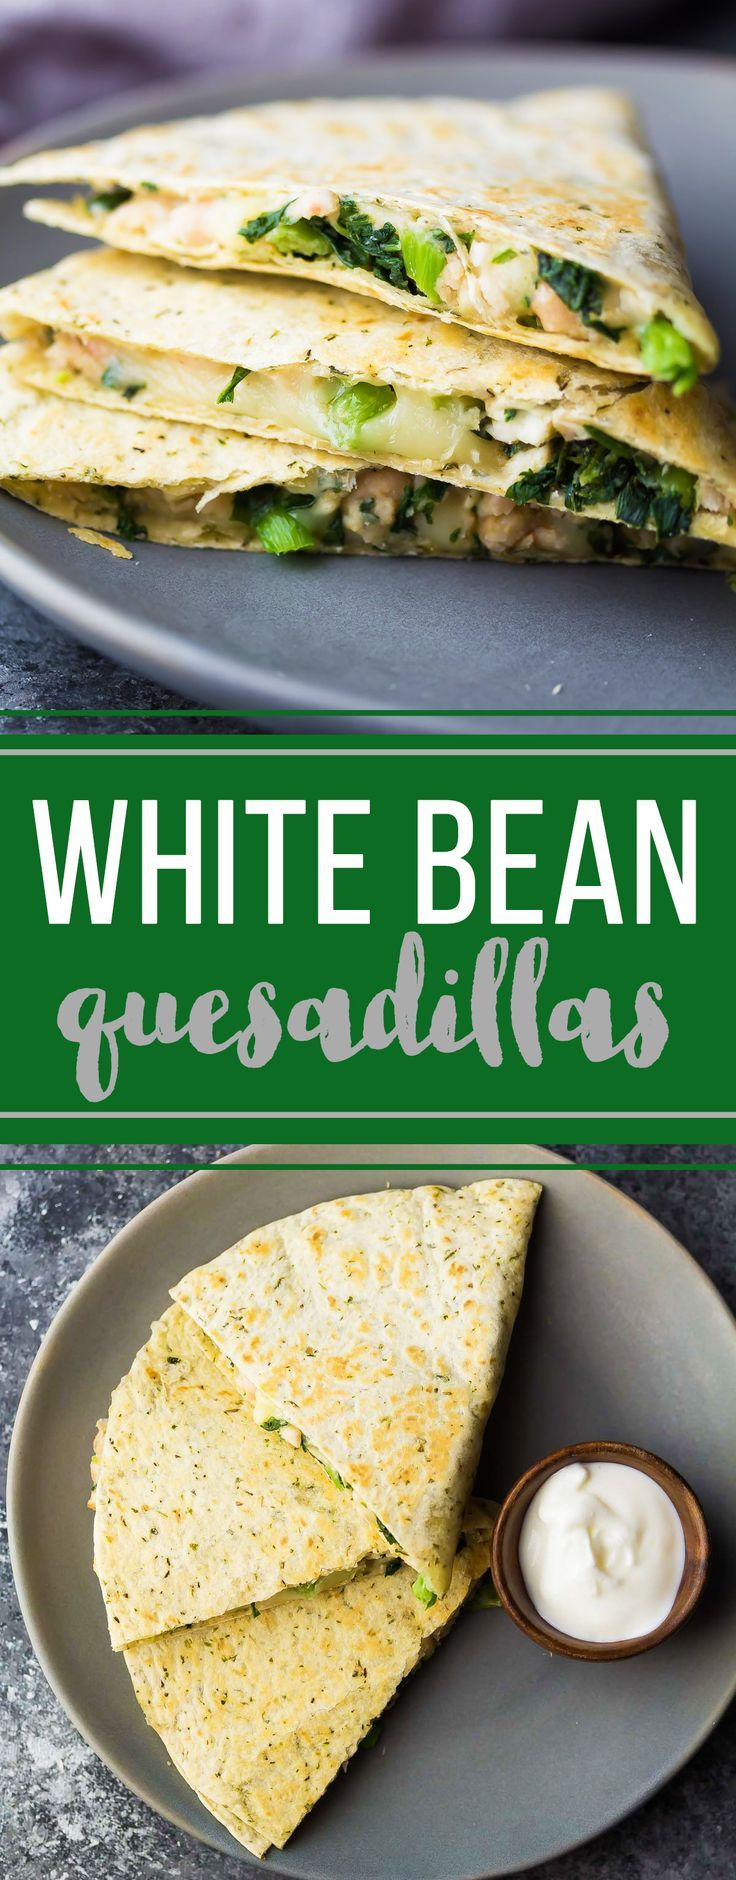 Make these smashed white bean and spinach quesadillas ahead and stash them in the freezer for a healthy grab and go lunch!